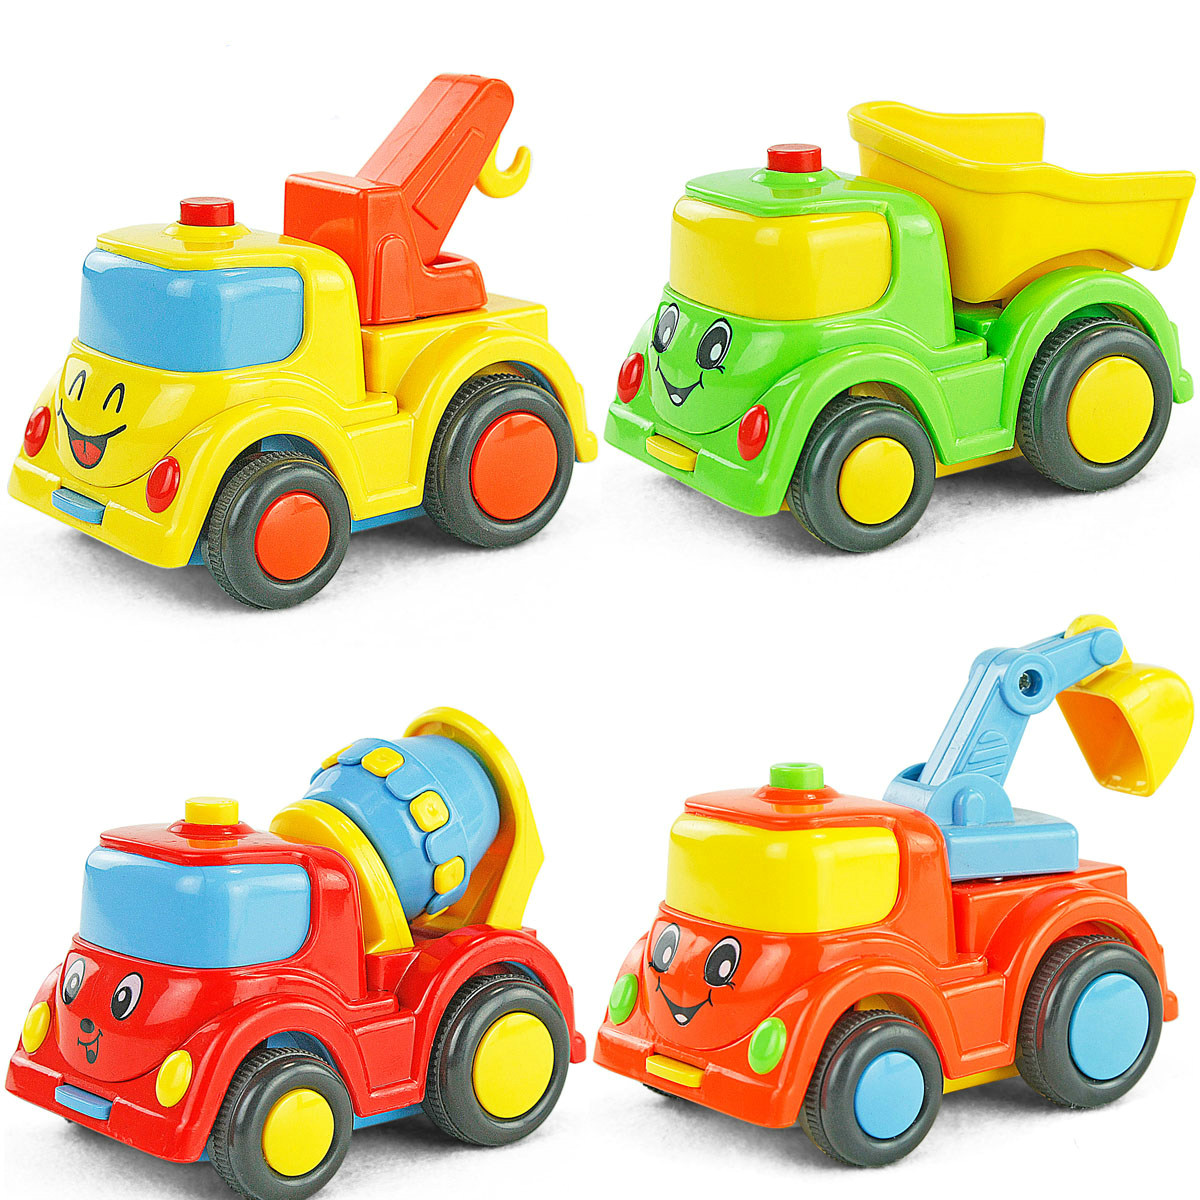 Unique Toddler Toys For 2 Year Old Car : Baby toy lot inertial smiling face car year